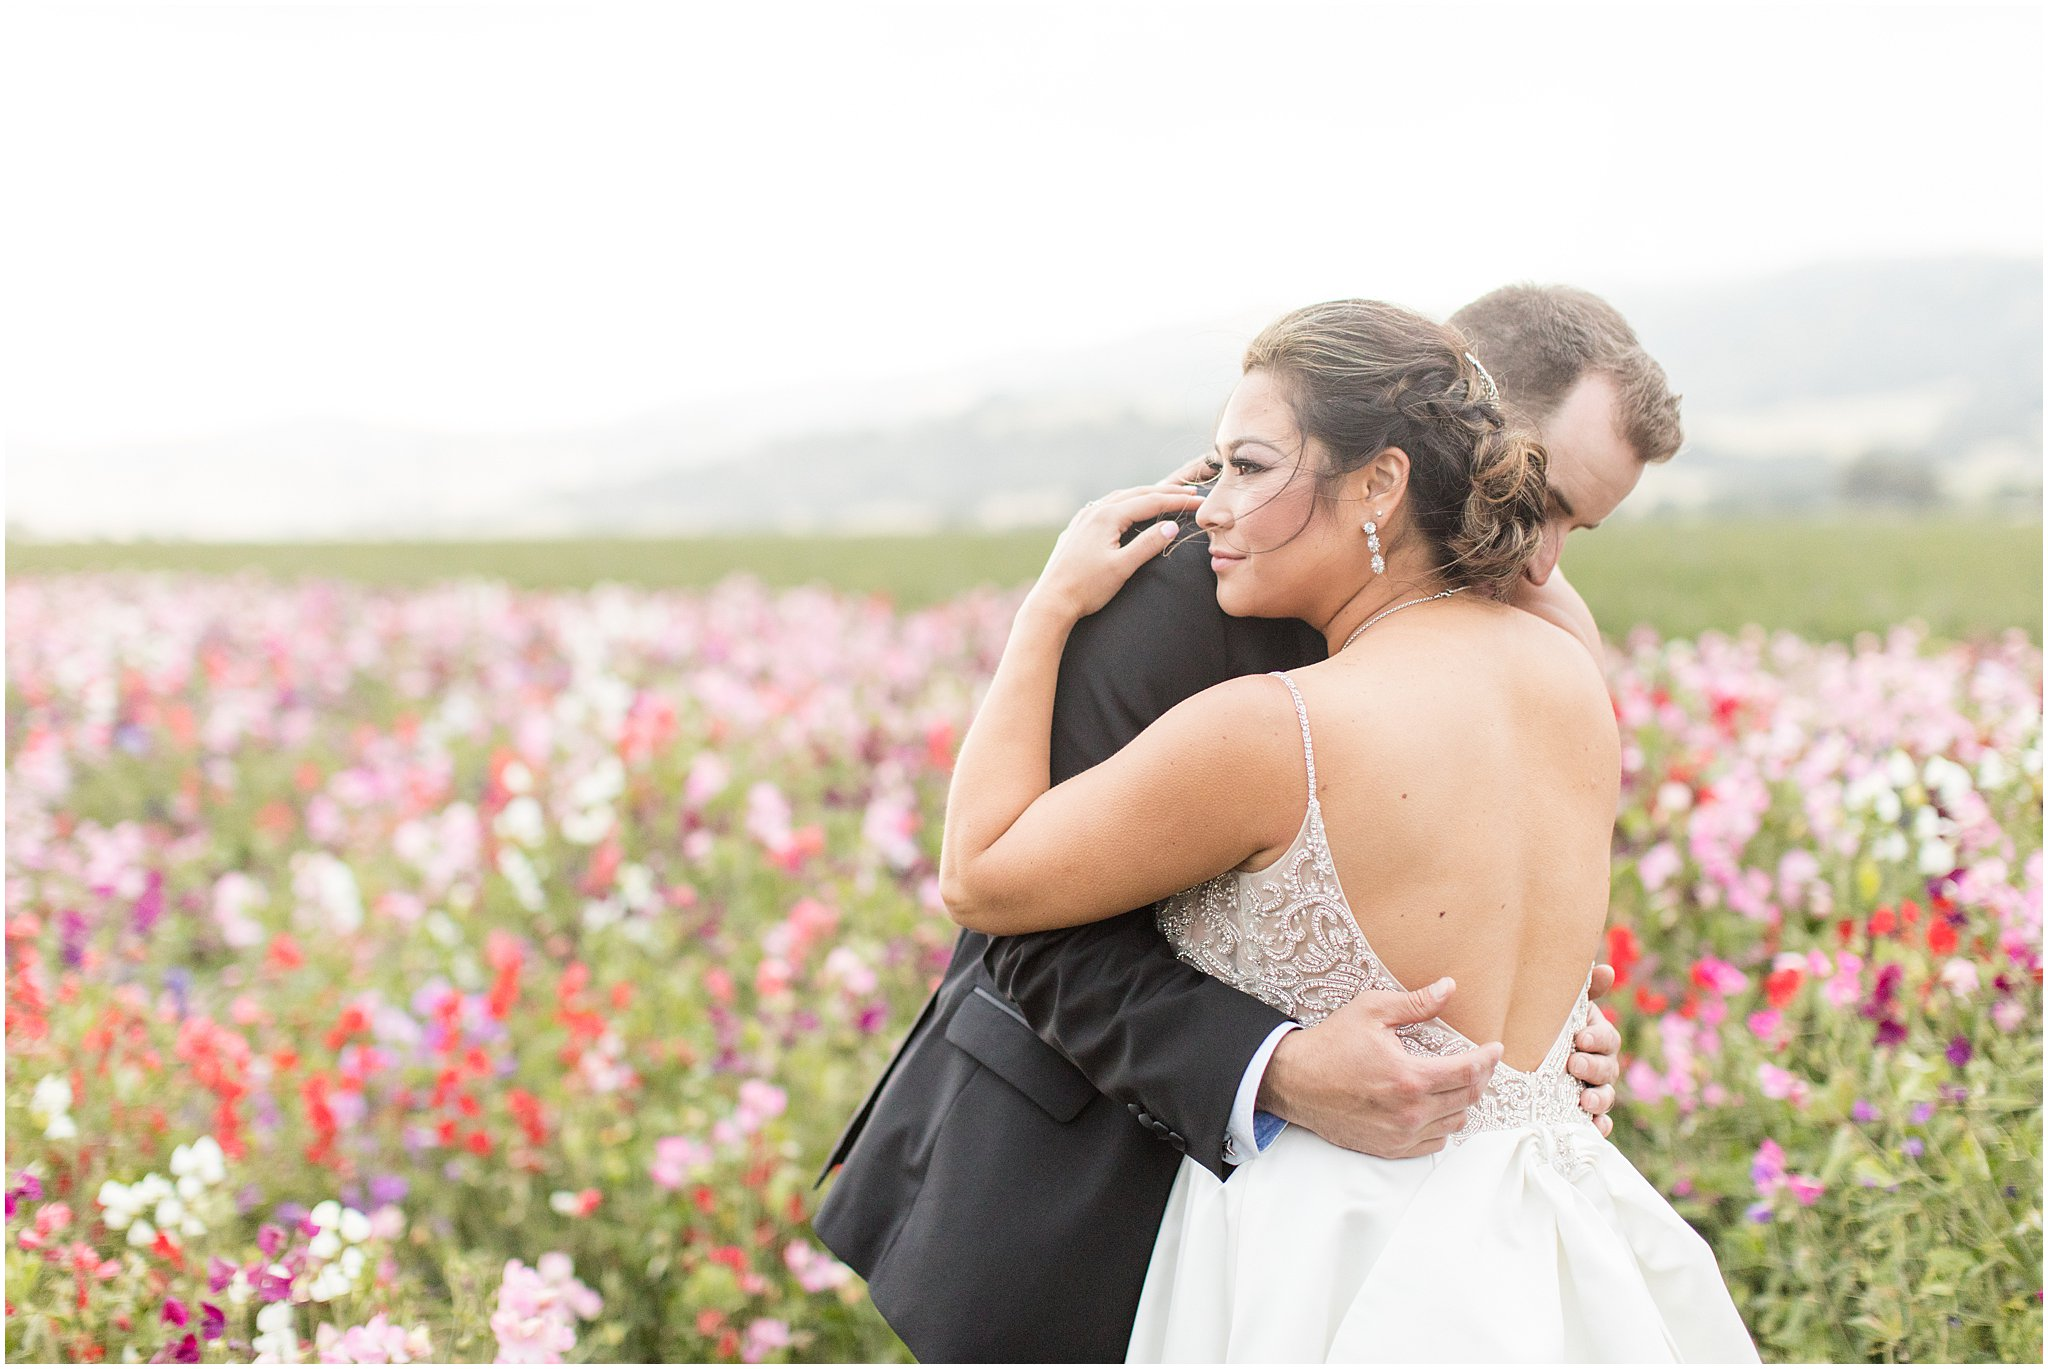 2019 wedding san juan bautista hacienda de leal vineyards bay area wedding photographer_0086.jpg